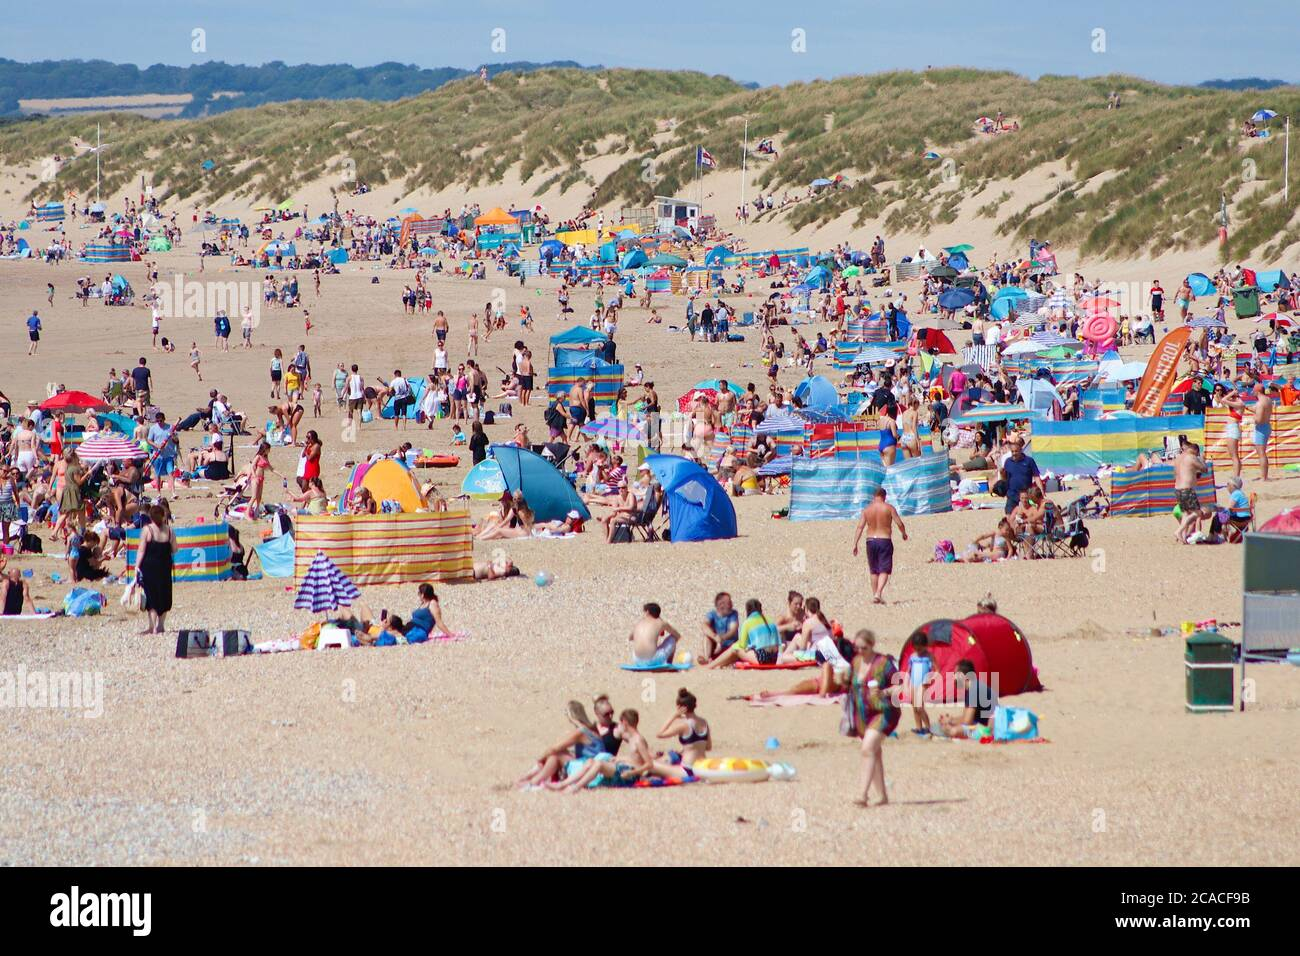 Camber, East Sussex, UK. 06 Aug, 2020. UK Weather: The South East coast is set for increasingly higher temperatures over the coming days with Camber Sands in East Sussex expecting large crowds of people taking advantage of the golden sandy beaches. Photo Credit: Paul Lawrenson-PAL Media/Alamy Live News Stock Photo